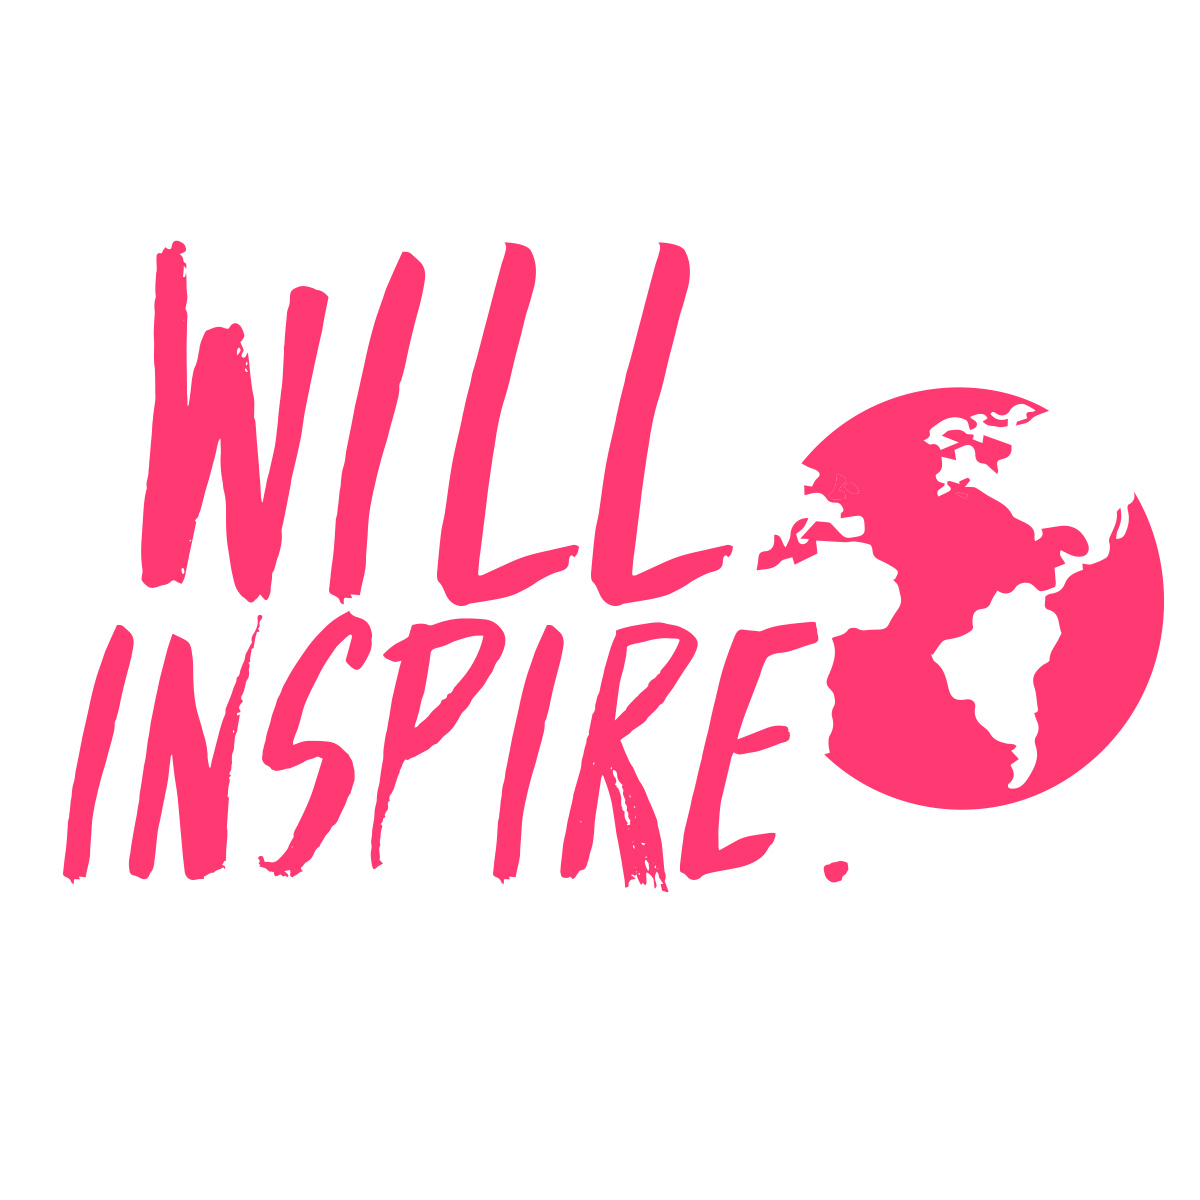 """Will Inspire is a Indie Hip Hop artist that is originally from St. Louis, MO, moved to the Chicago, IL area for a few years, and now resides in the So'Cal area after leaving home to chase his dream of using his music to inspire his generation on the highest platform possible. Only doing music for 4 years, he's performed at SXSW 2 years straight, headlined numerous music festivals, and opened up for Hip Hops heavyweight, Kendrick Lamar just to name a few things!  Mainly known for his classic hip hop feel and inspiring lyrics, Will Inspire has created a lane for himself by attracting followers from all walks of life. He's released 2 free projects totaling 25 tracks titled """"Evidence Tunes""""& """"Empty Pockets"""" which gained attention from blogs and started the buzz for a few industry executives. Hes set to release his next project in early Summer 2017 which is projected to launch his career to new heights.  Outside of music, Will Inspire put together a toy drive with the help of Childrens Home & Aid and United Way in the Northern Illinois area back in 2013 that went down as one of the biggest in the areas history. This also raised media attention with Will Inspire appearing on MSNBC news."""